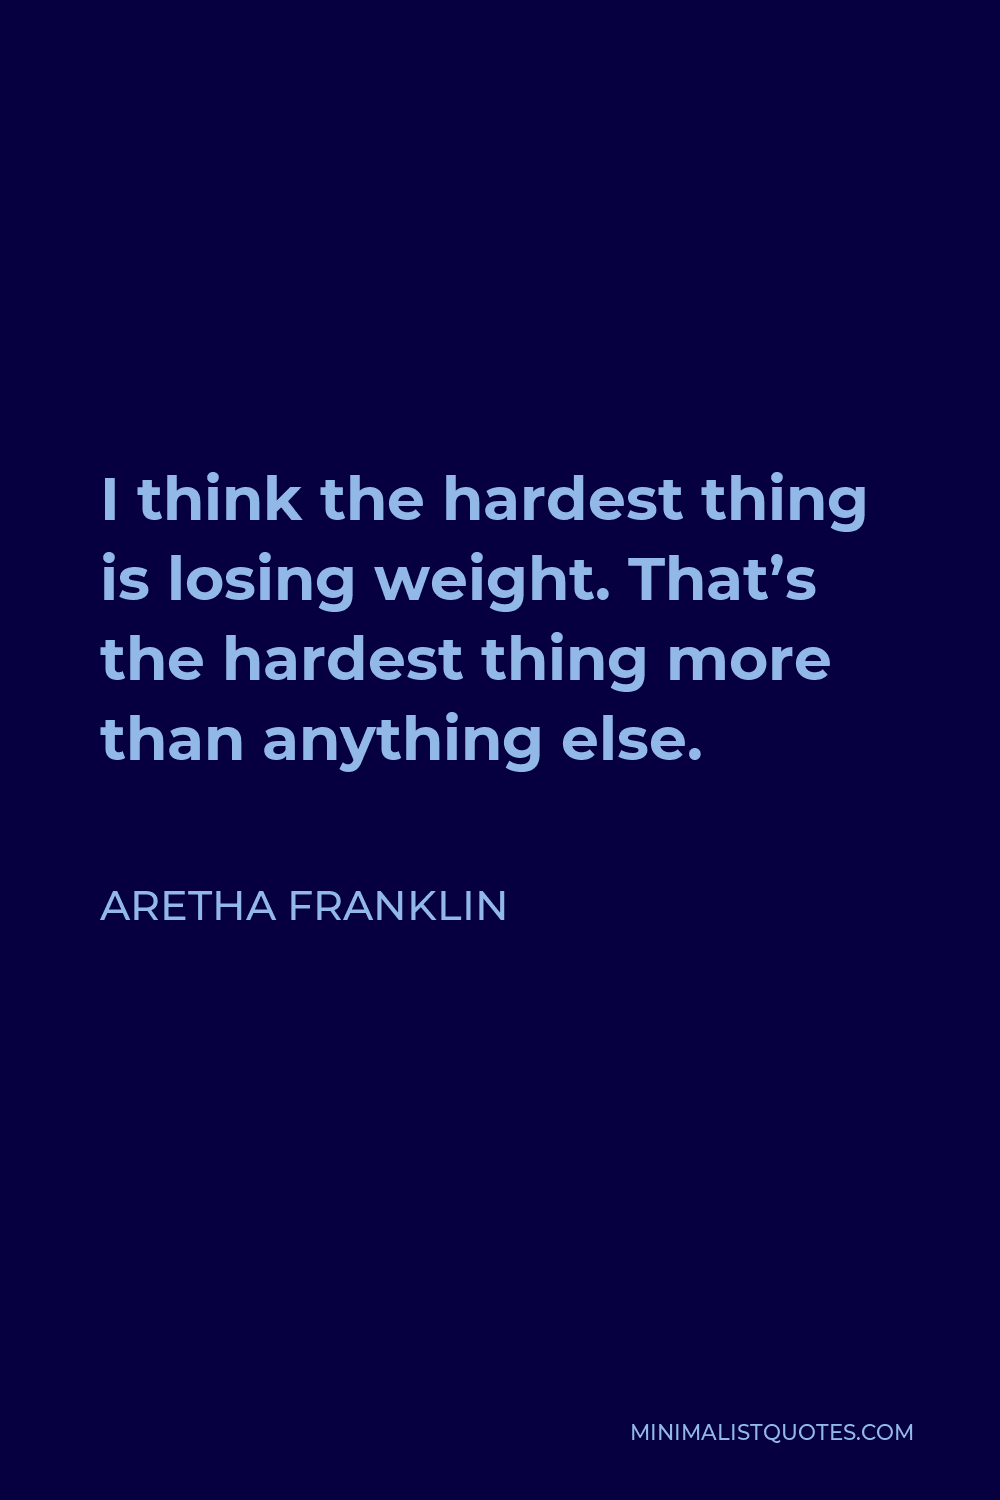 Aretha Franklin Quote - I think the hardest thing is losing weight. That's the hardest thing more than anything else.